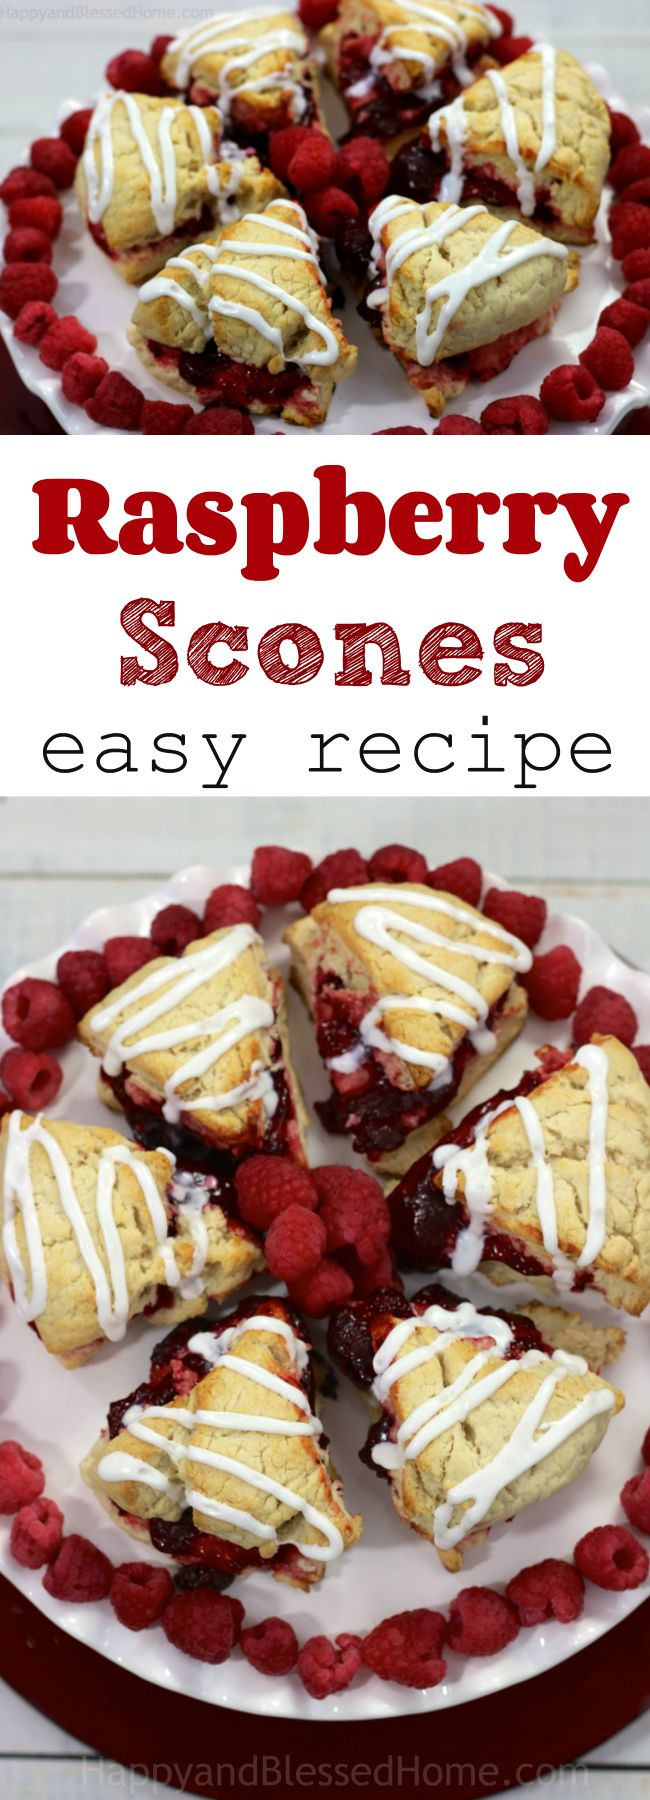 A dish pretty enough to decorate with! Red and white raspberry scones recipe. Buttery, moist, and a perfect Christmas dessert or appetizer for holiday entertaining. Serve with sweet tea for Southern Hospitality and Style! #HolidaysWithMilos #Ad #Pmedia